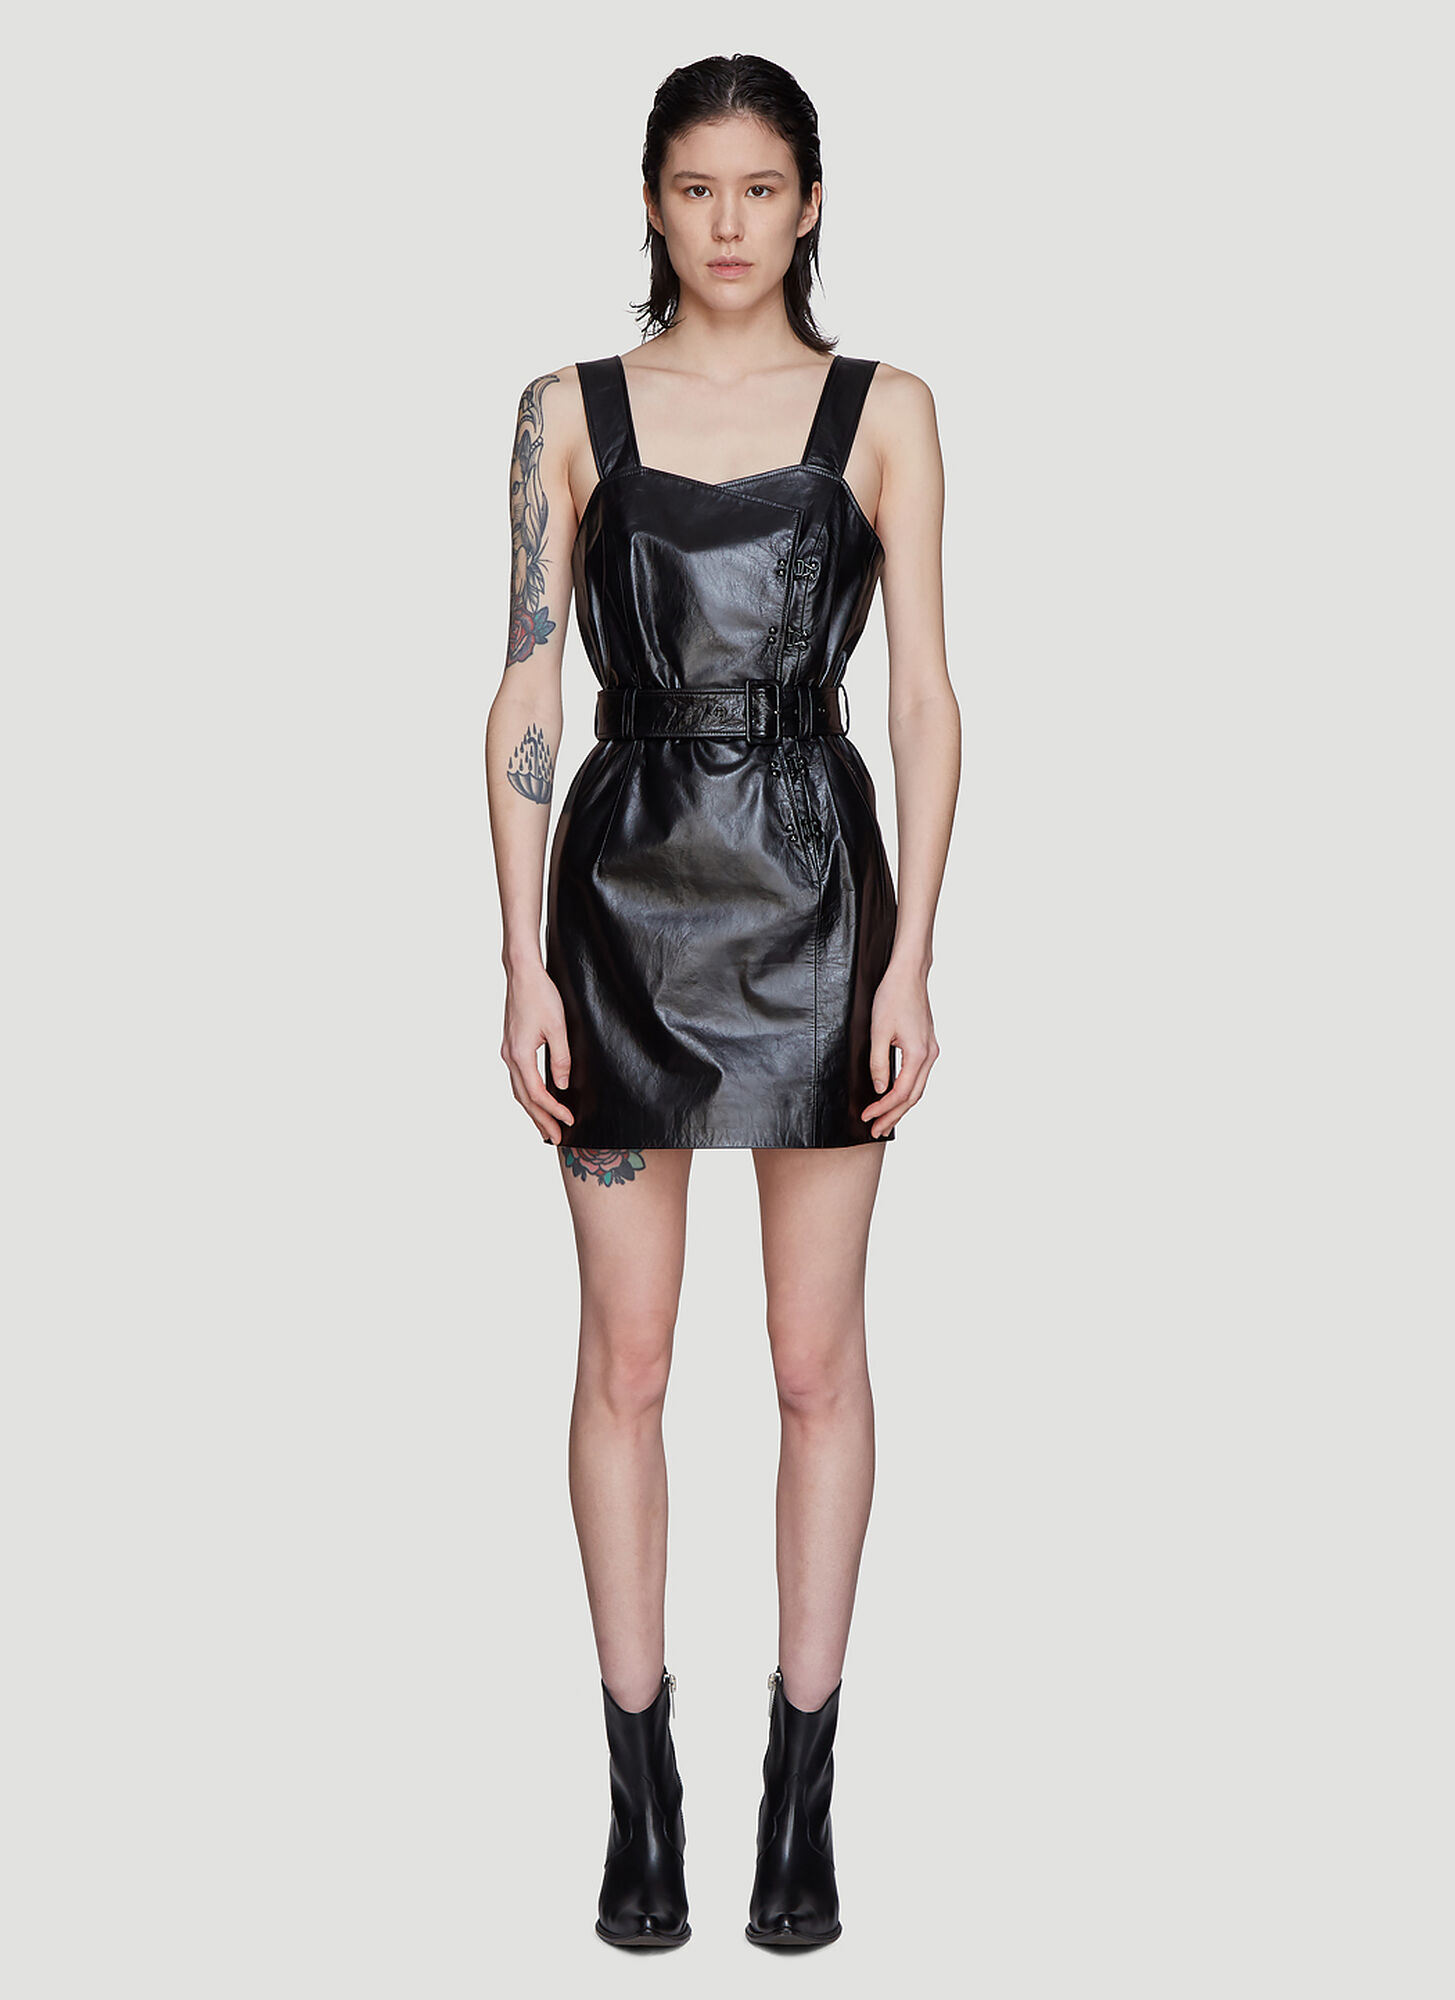 Olivier Theyskens Belted Hook and Eye Leather Dress in Black